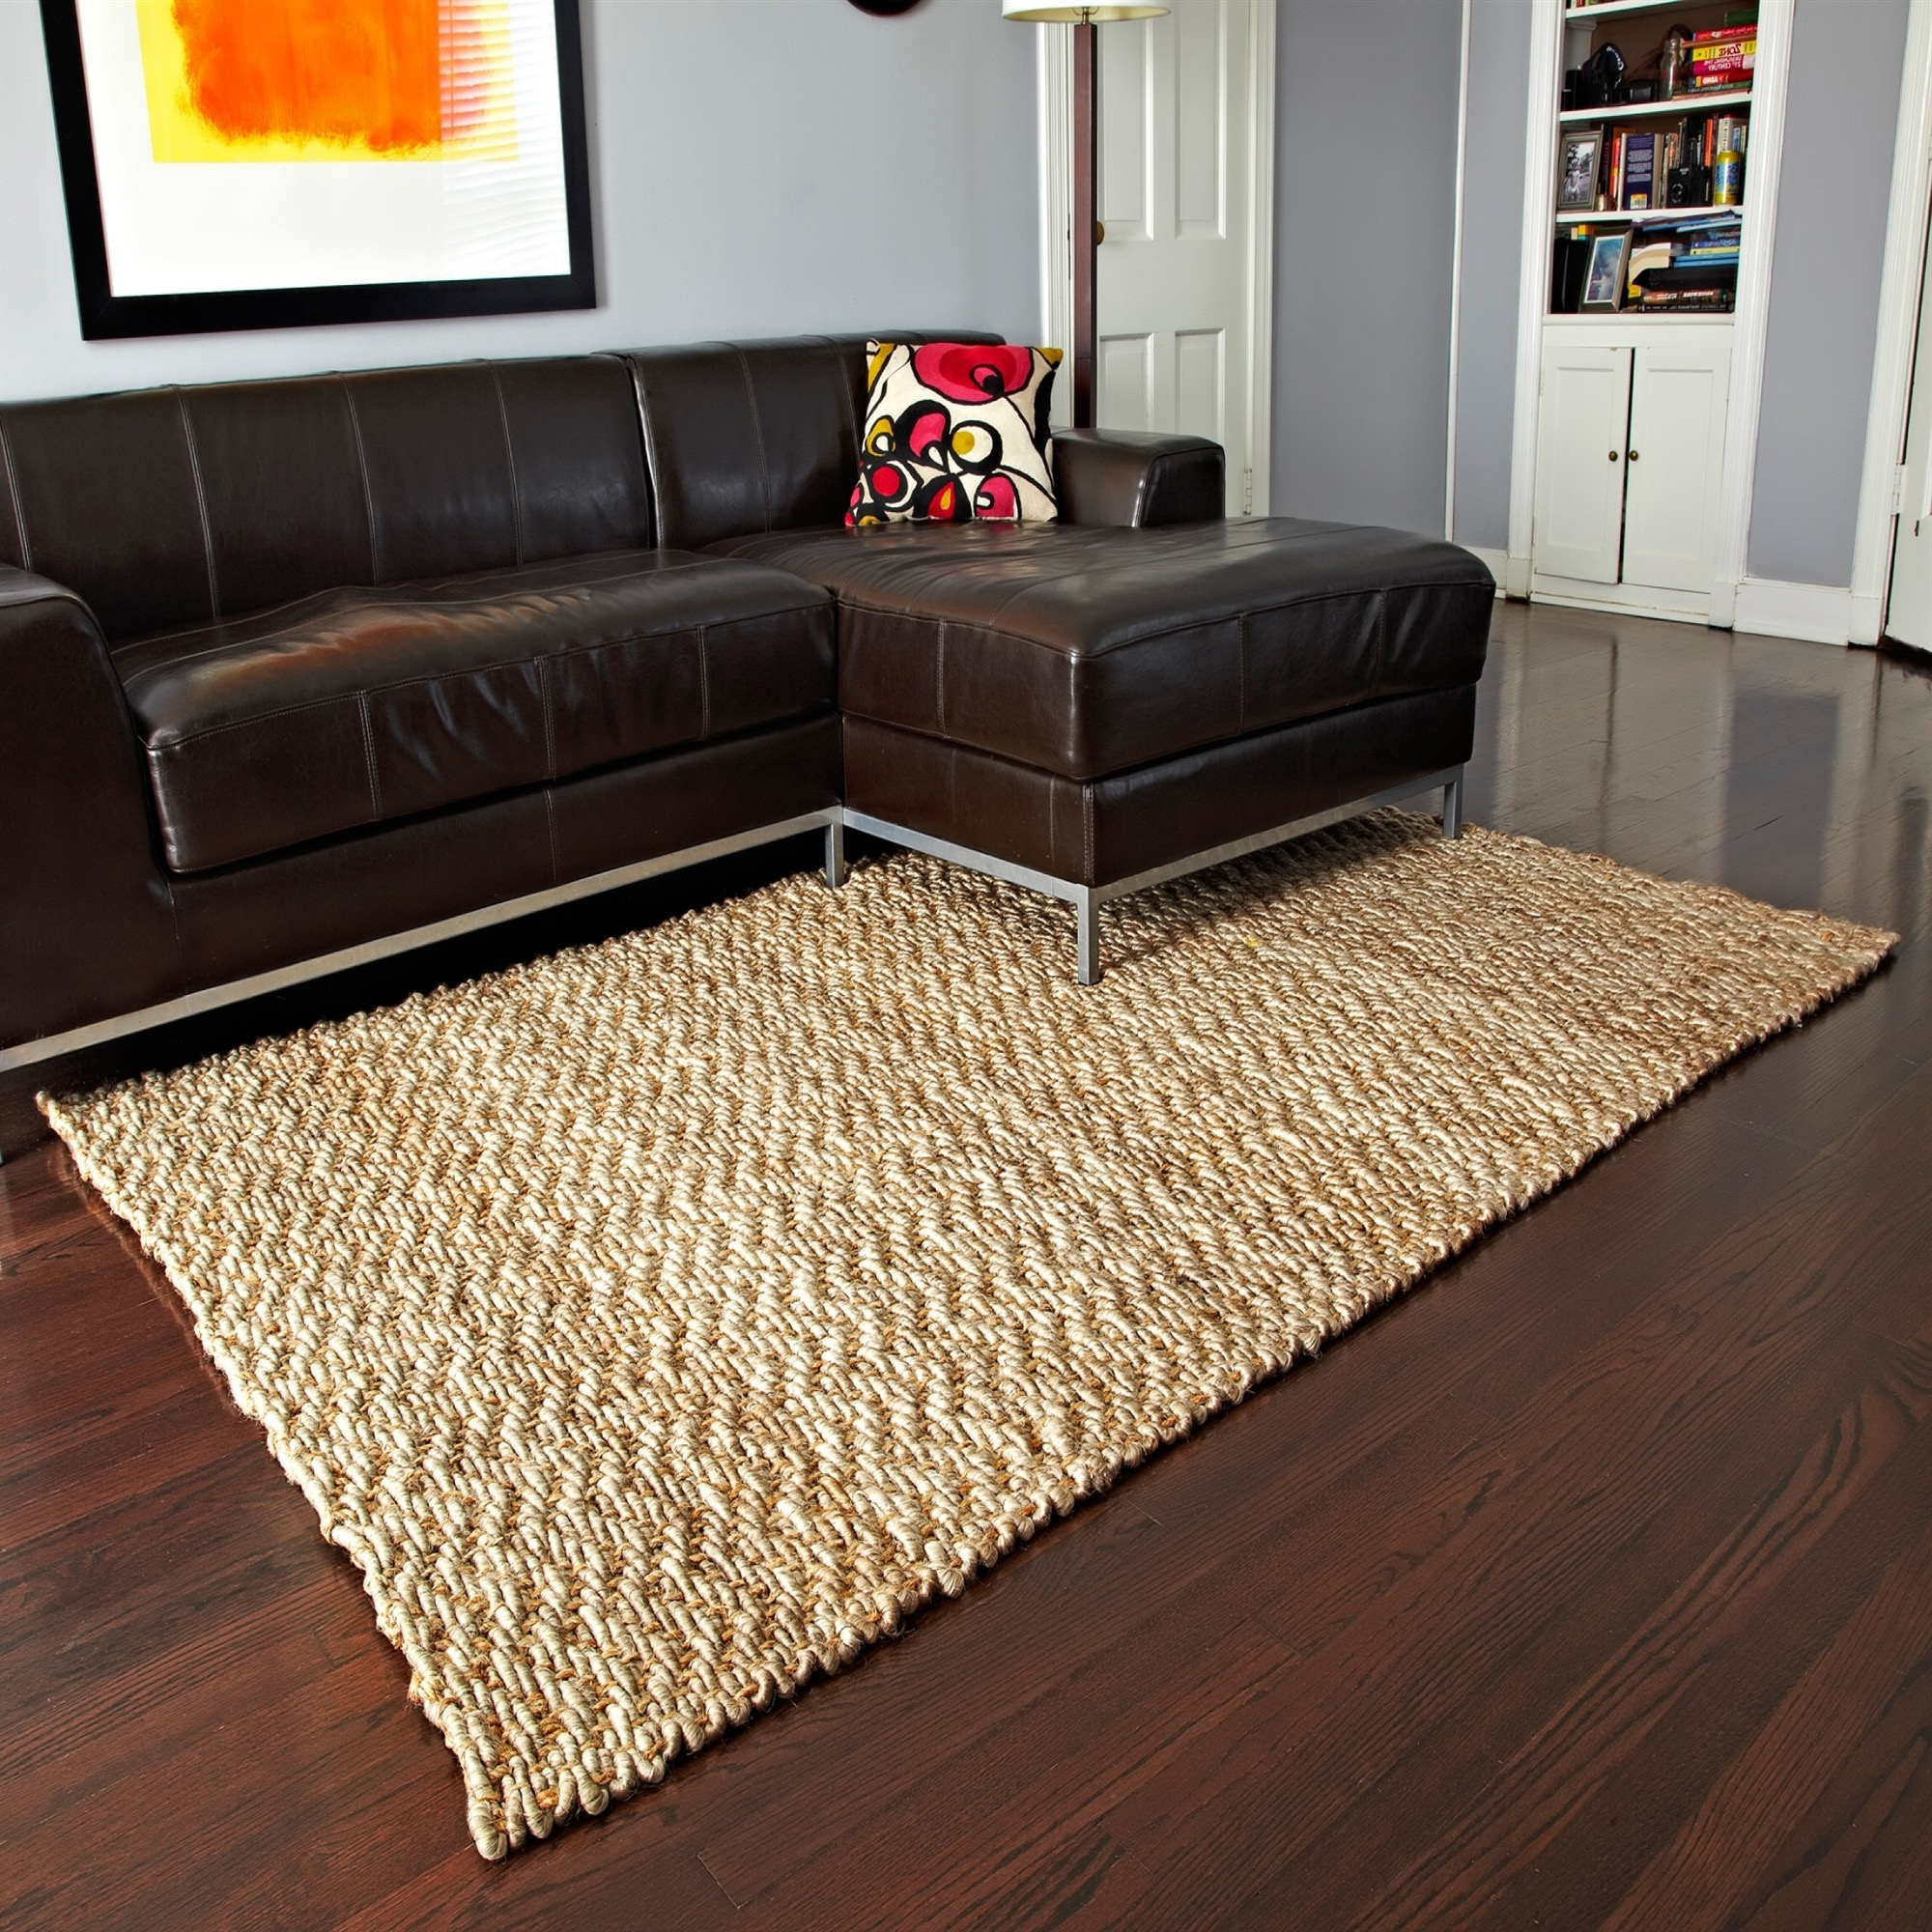 Modern Apartment Living Room Decor With Wood Floor And Square Braided Area Rugs (View 2 of 15)